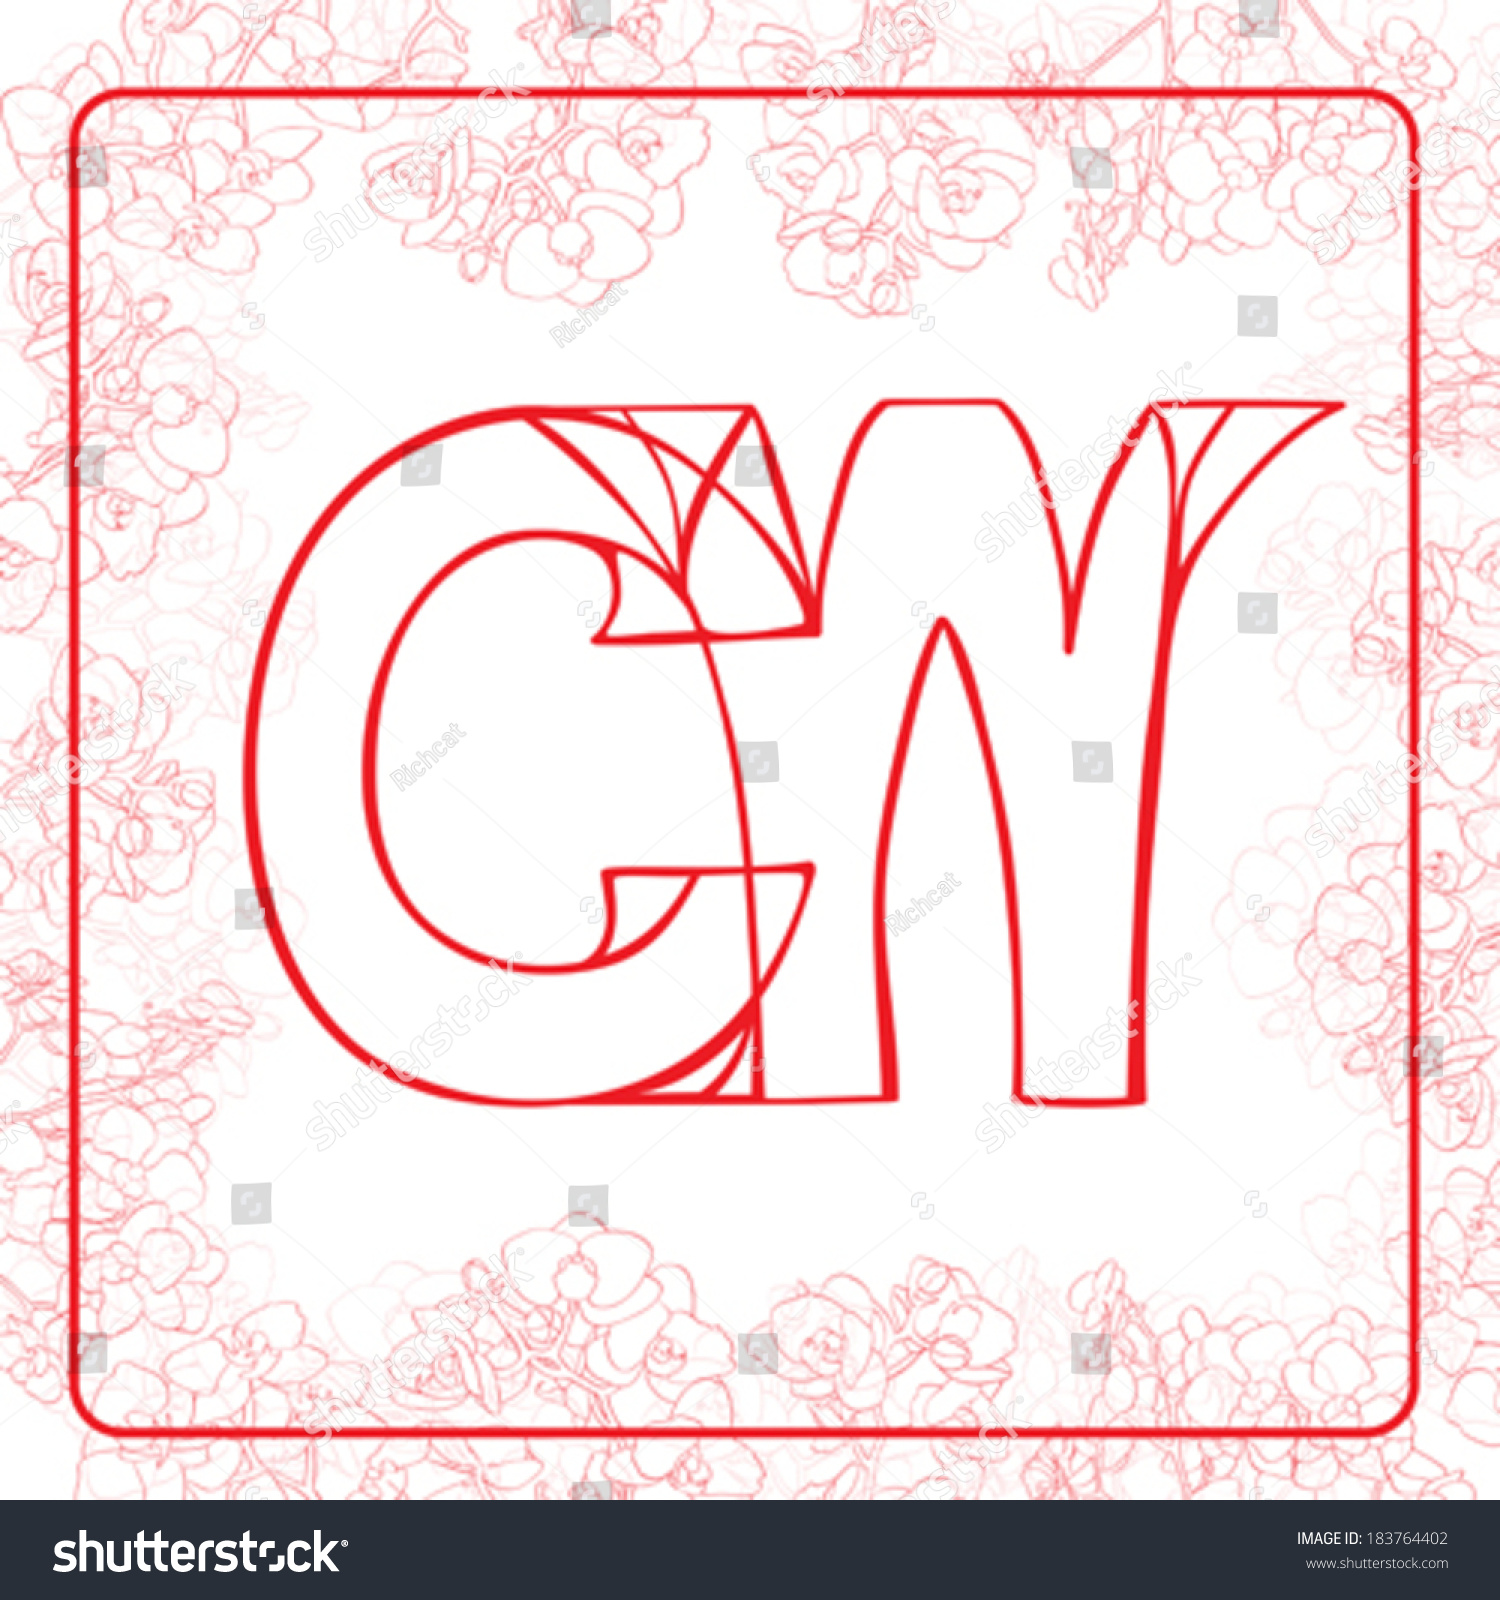 C W Letters Monogram Surrounded By Stock Vector (Royalty Free ...